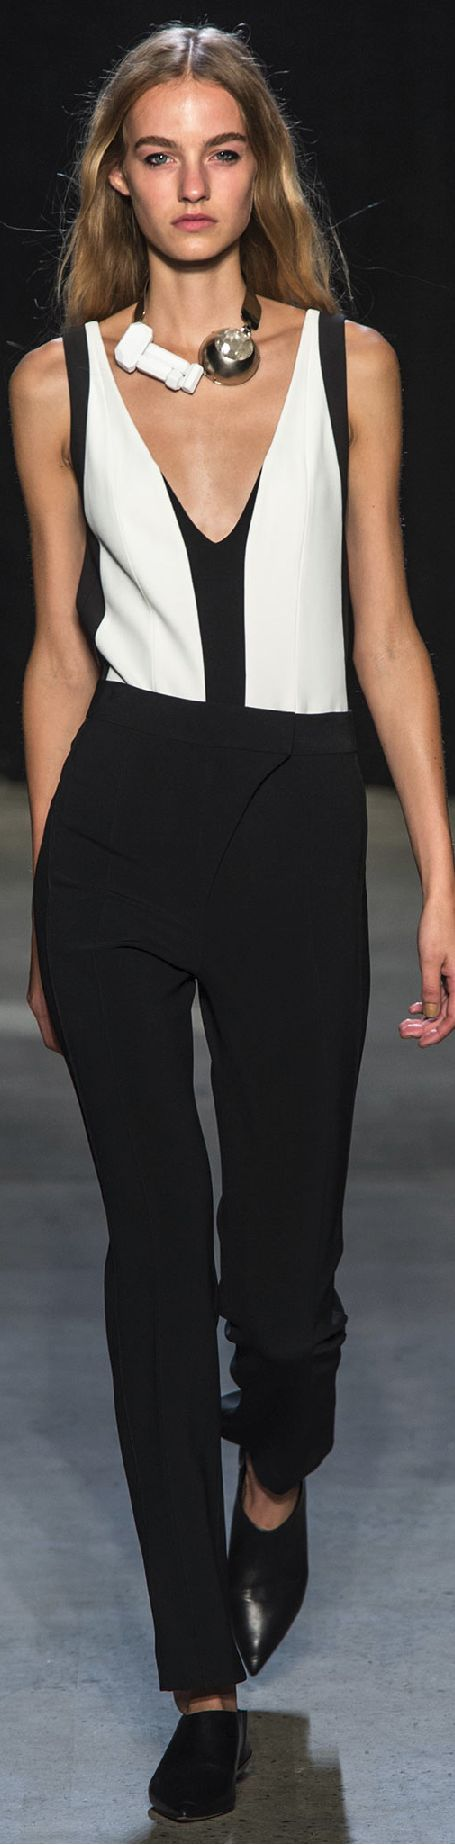 Narciso Rodriguez Spring 2015 Ready-to-Wear